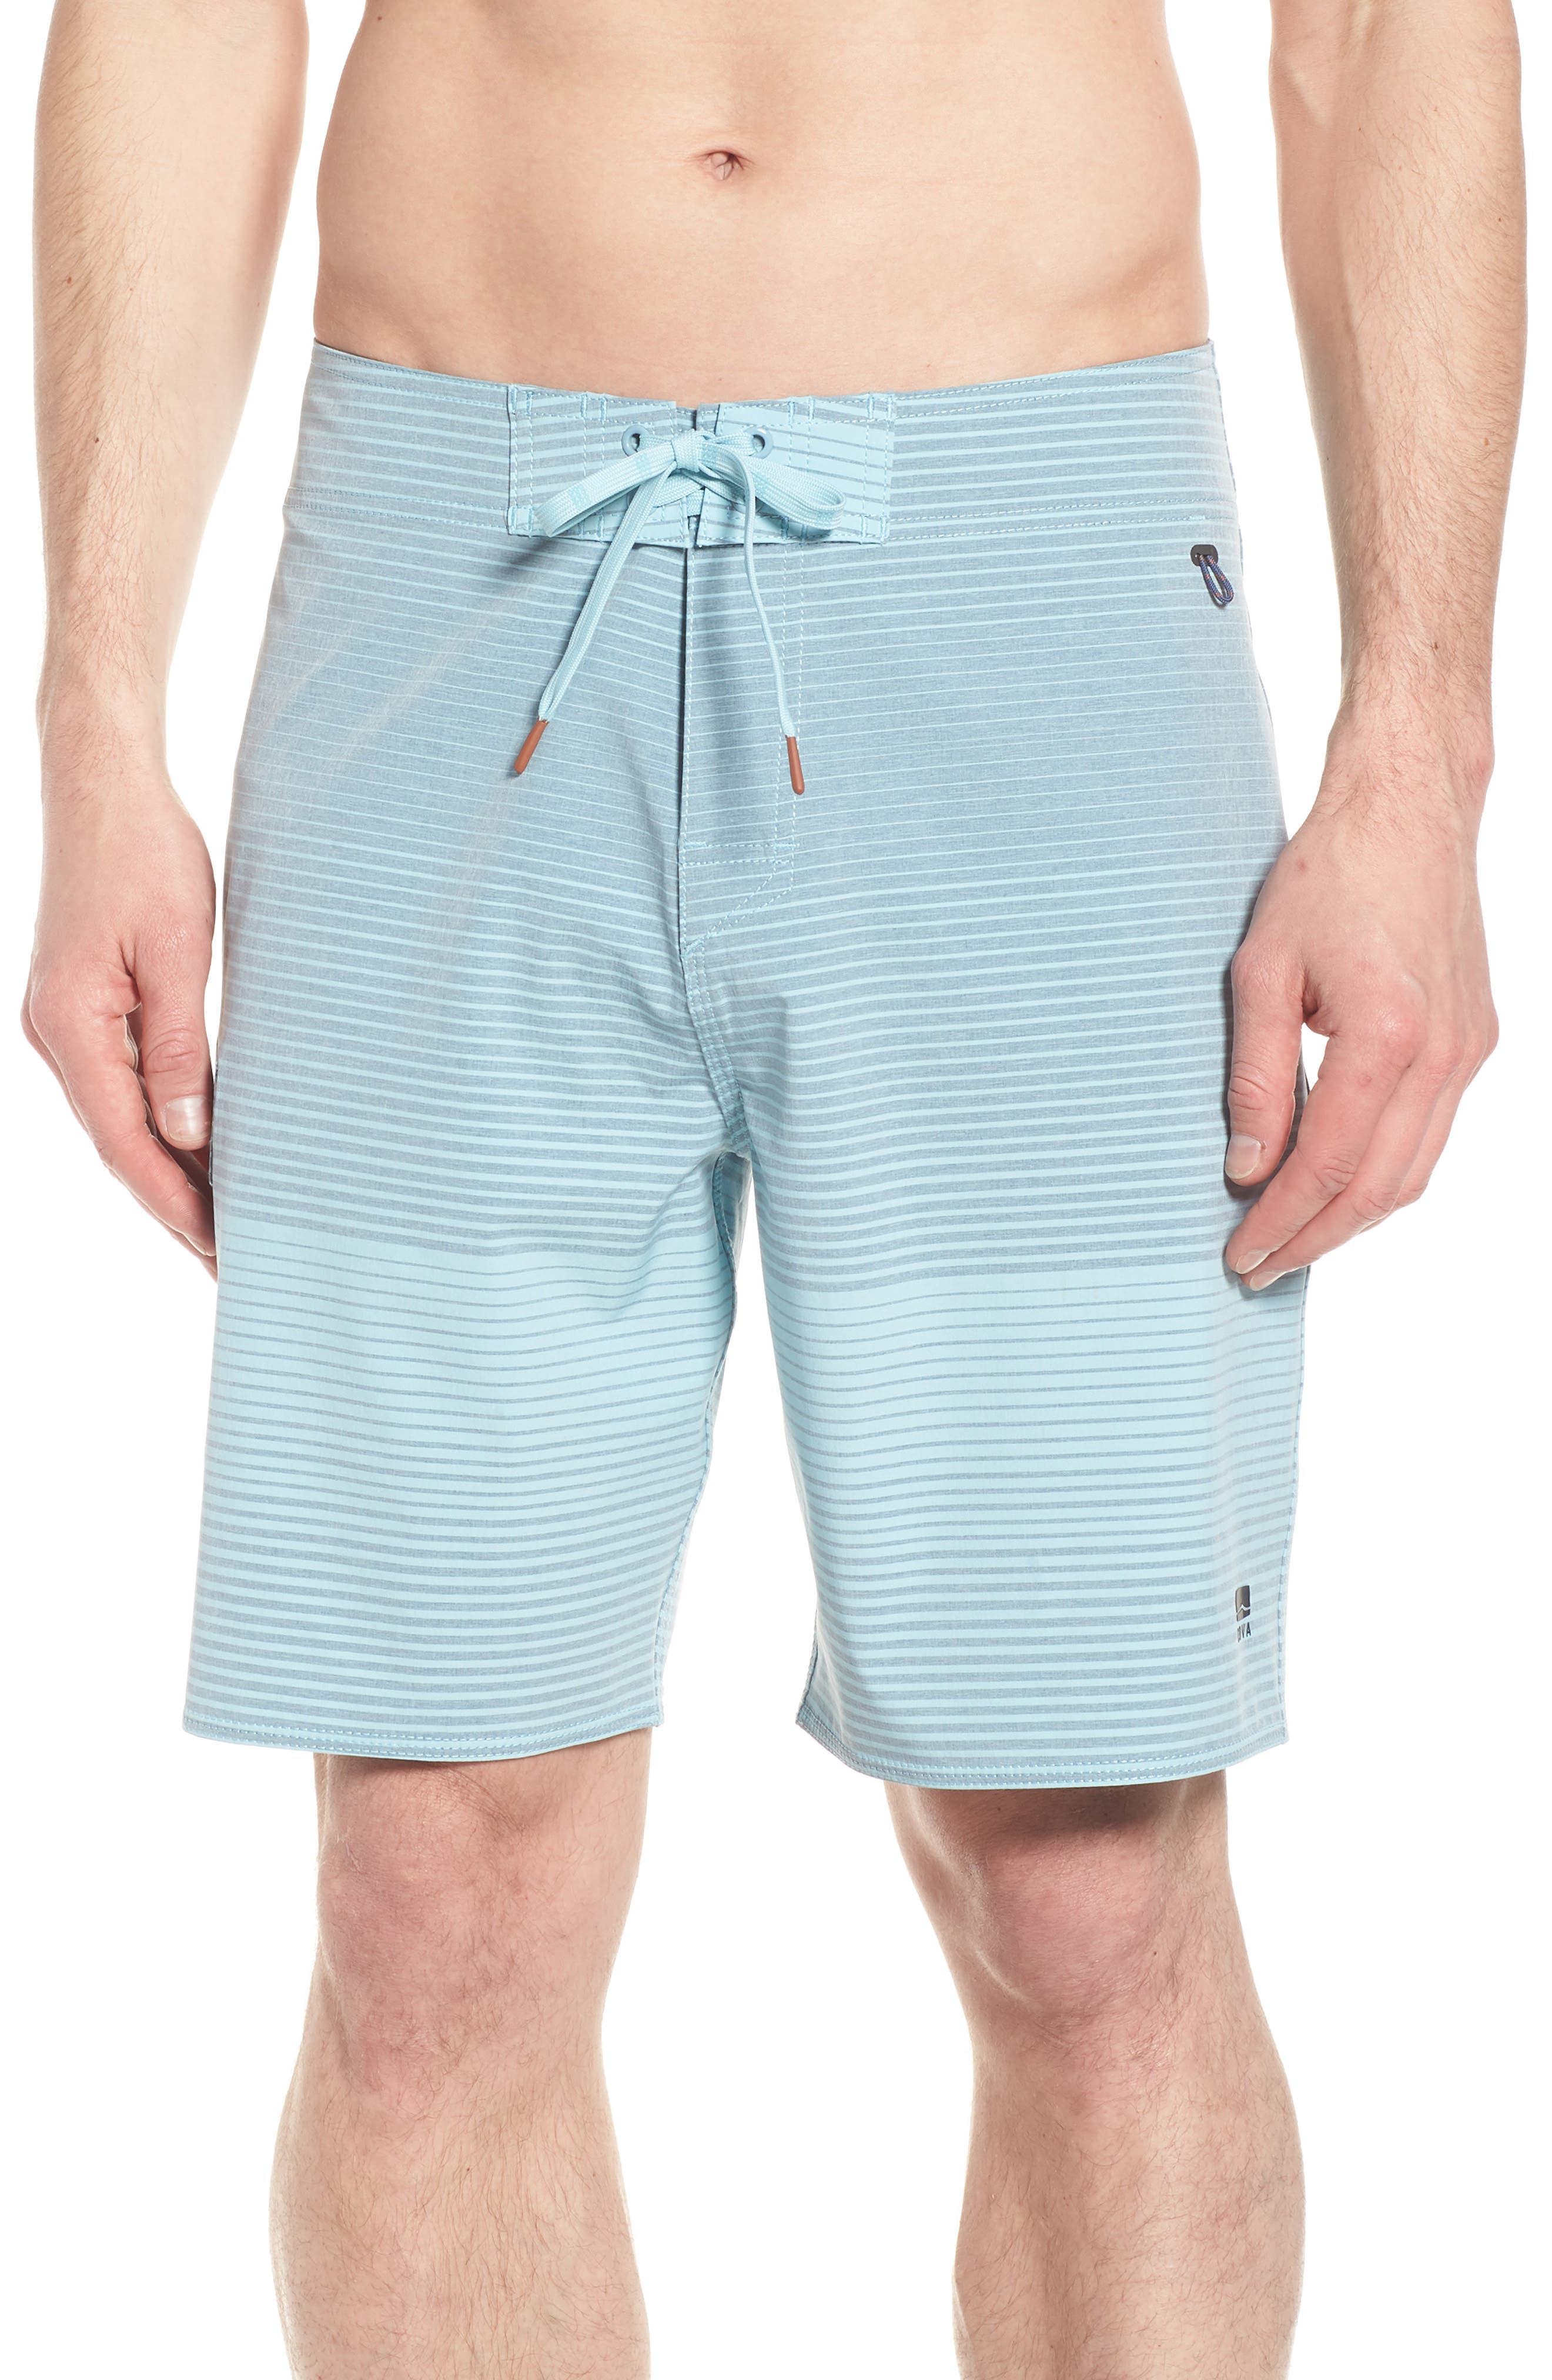 Water Level Board Shorts,                         Main,                         color, Harbour Blue